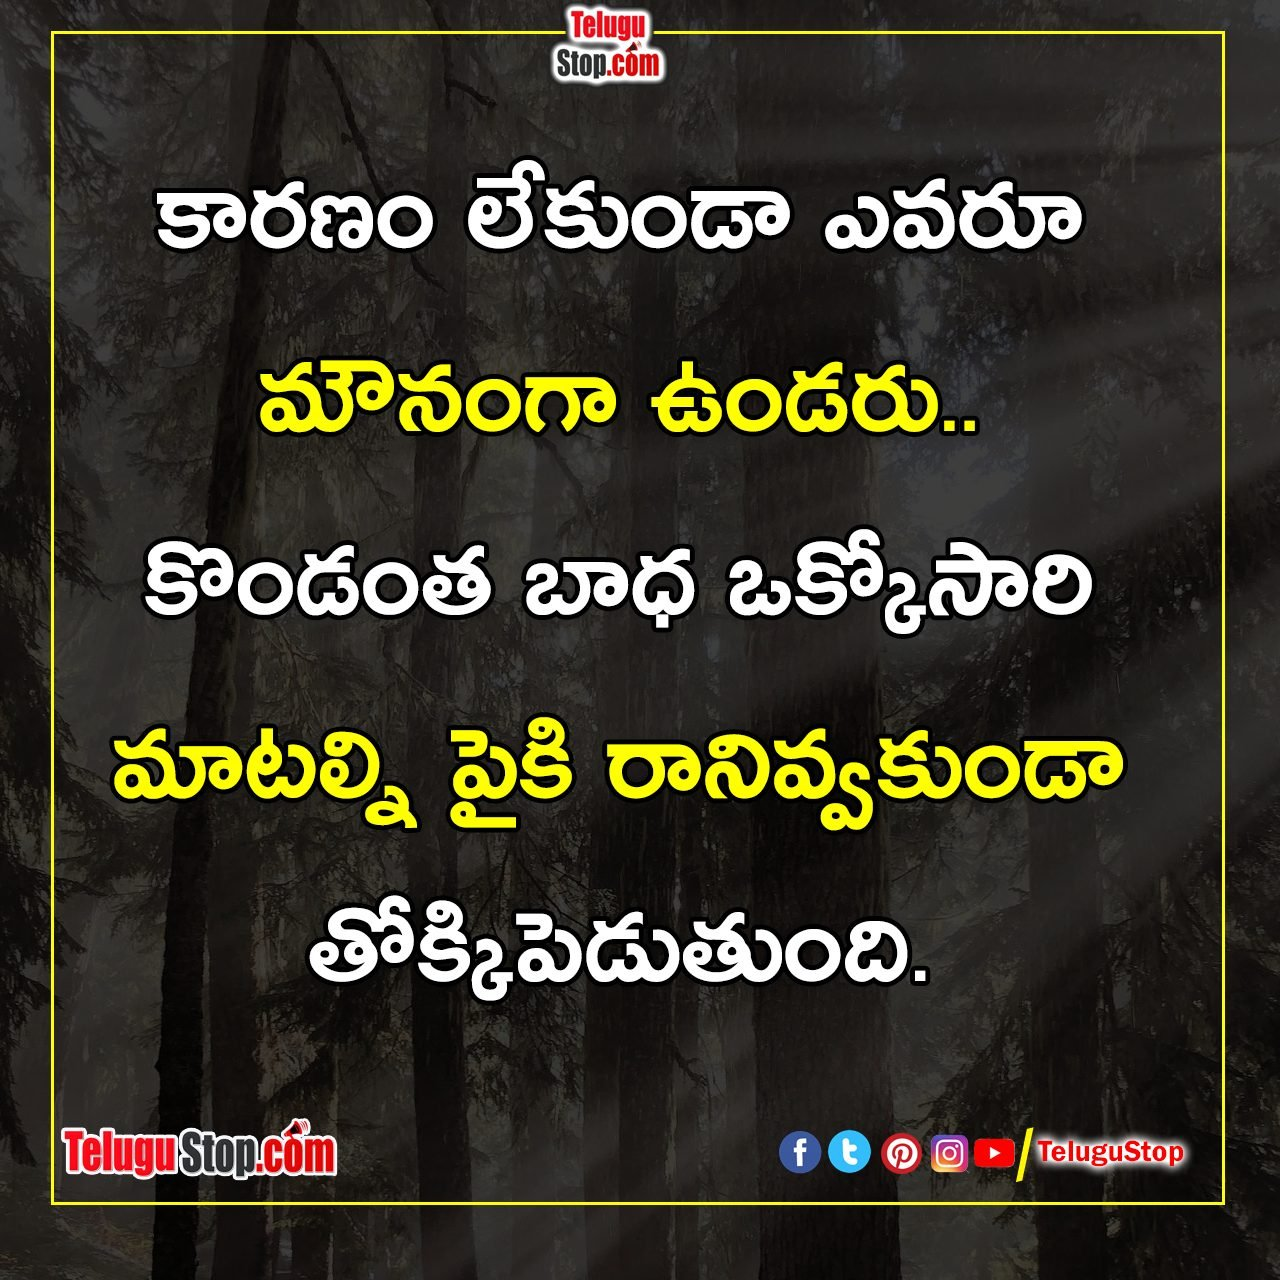 Telugu God Only Gives Opportunities Inspirational Quotes, Good Mind Inspirational Quotes, Listen To Your Conscience Inspirational Quotes, Not Be Silent Without Reason Inspirational Quotes-Telugu Daily Quotes - Inspirational/Motivational/Love/Friendship/Good Morning Quote